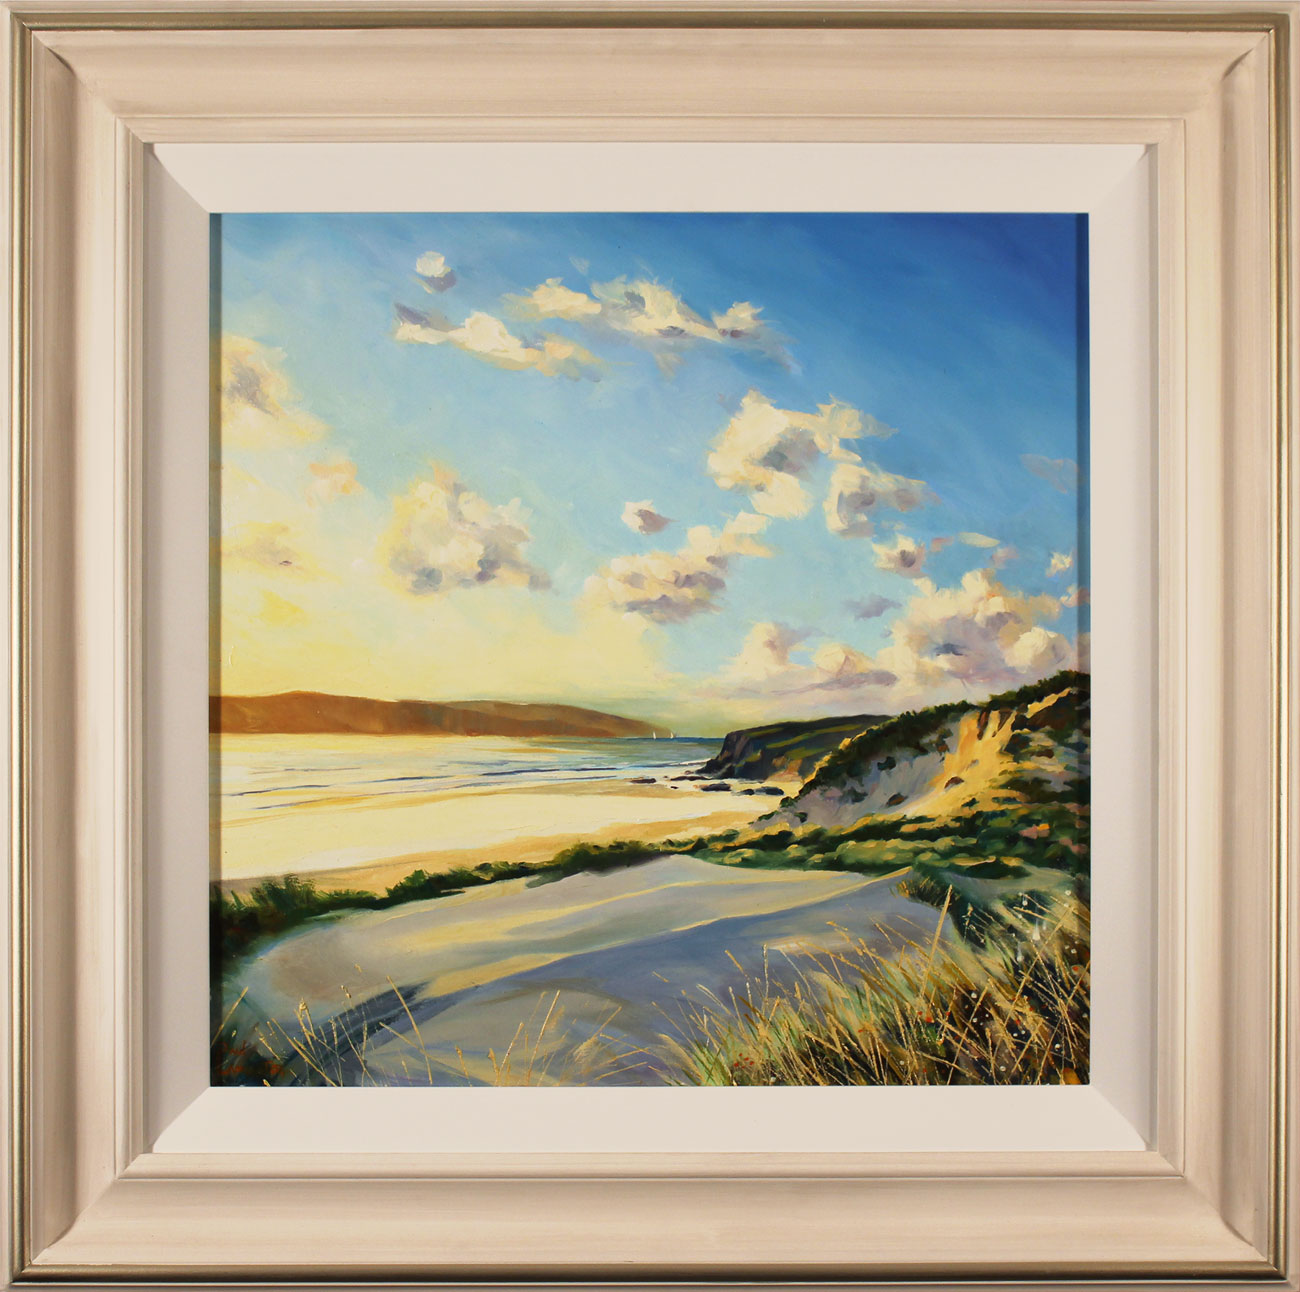 Paul Lancaster, Original oil painting on panel, Soft Sands, click to enlarge